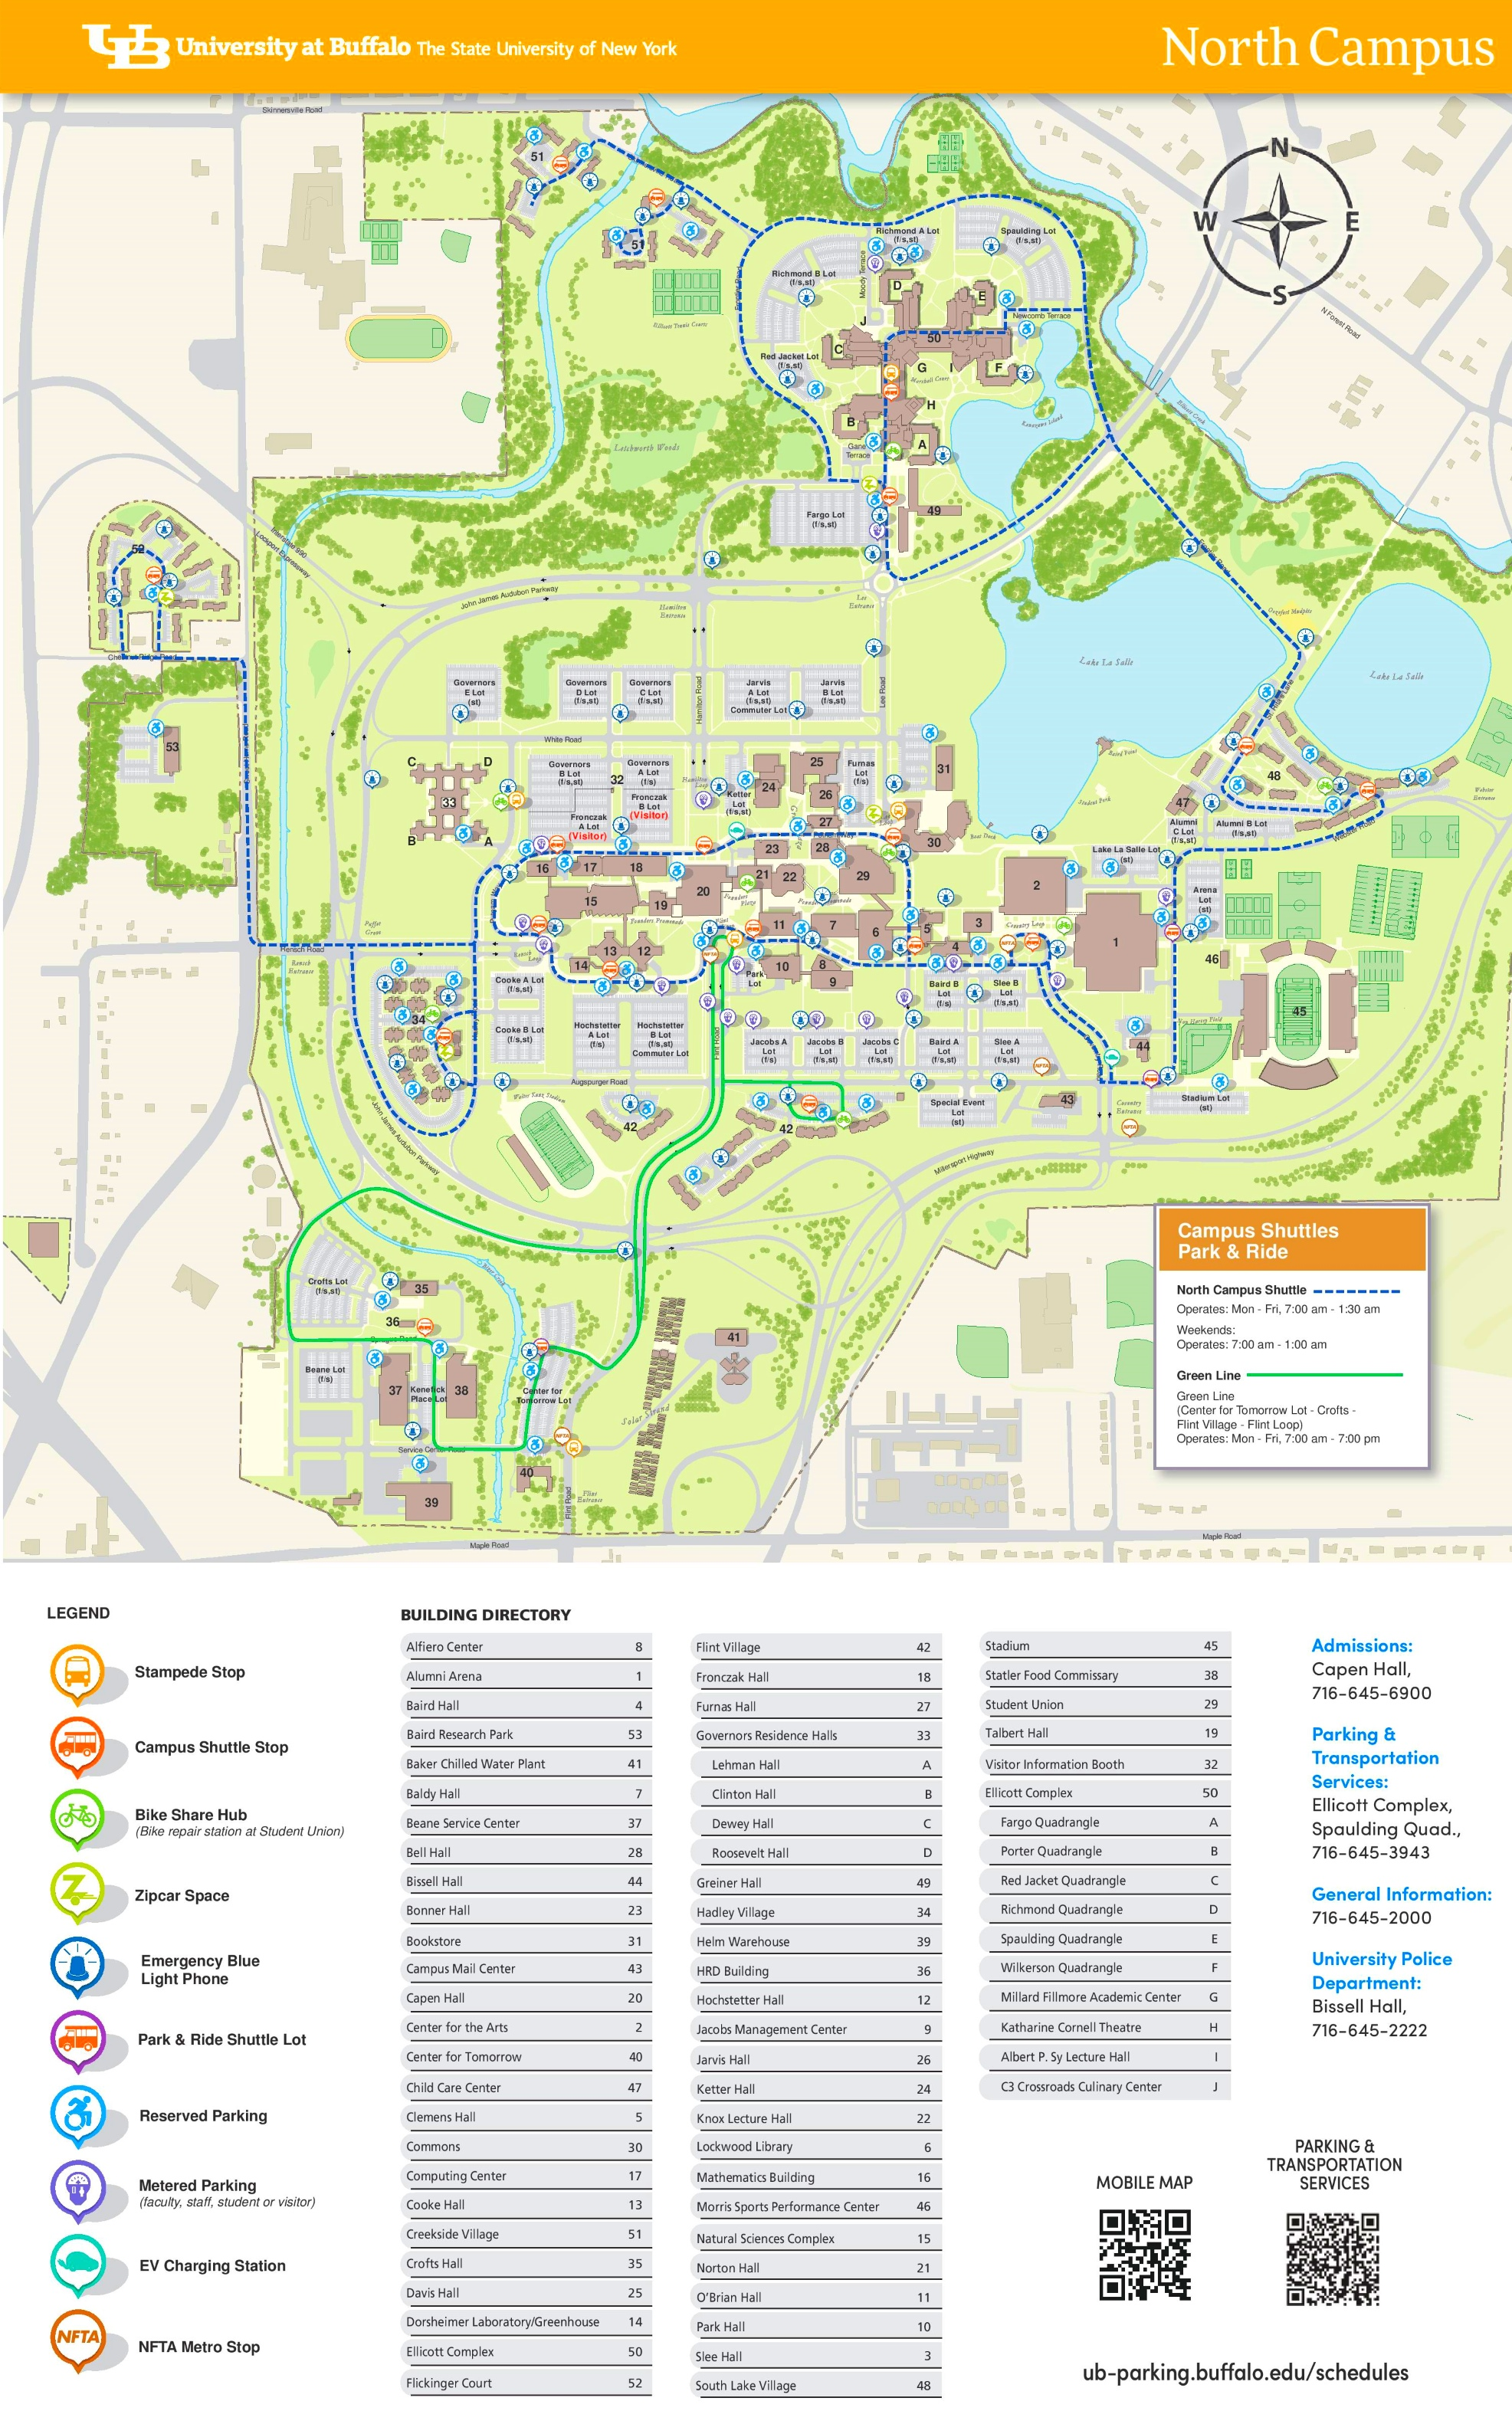 university at buffalo campus map University At Buffalo North Campus Map university at buffalo campus map